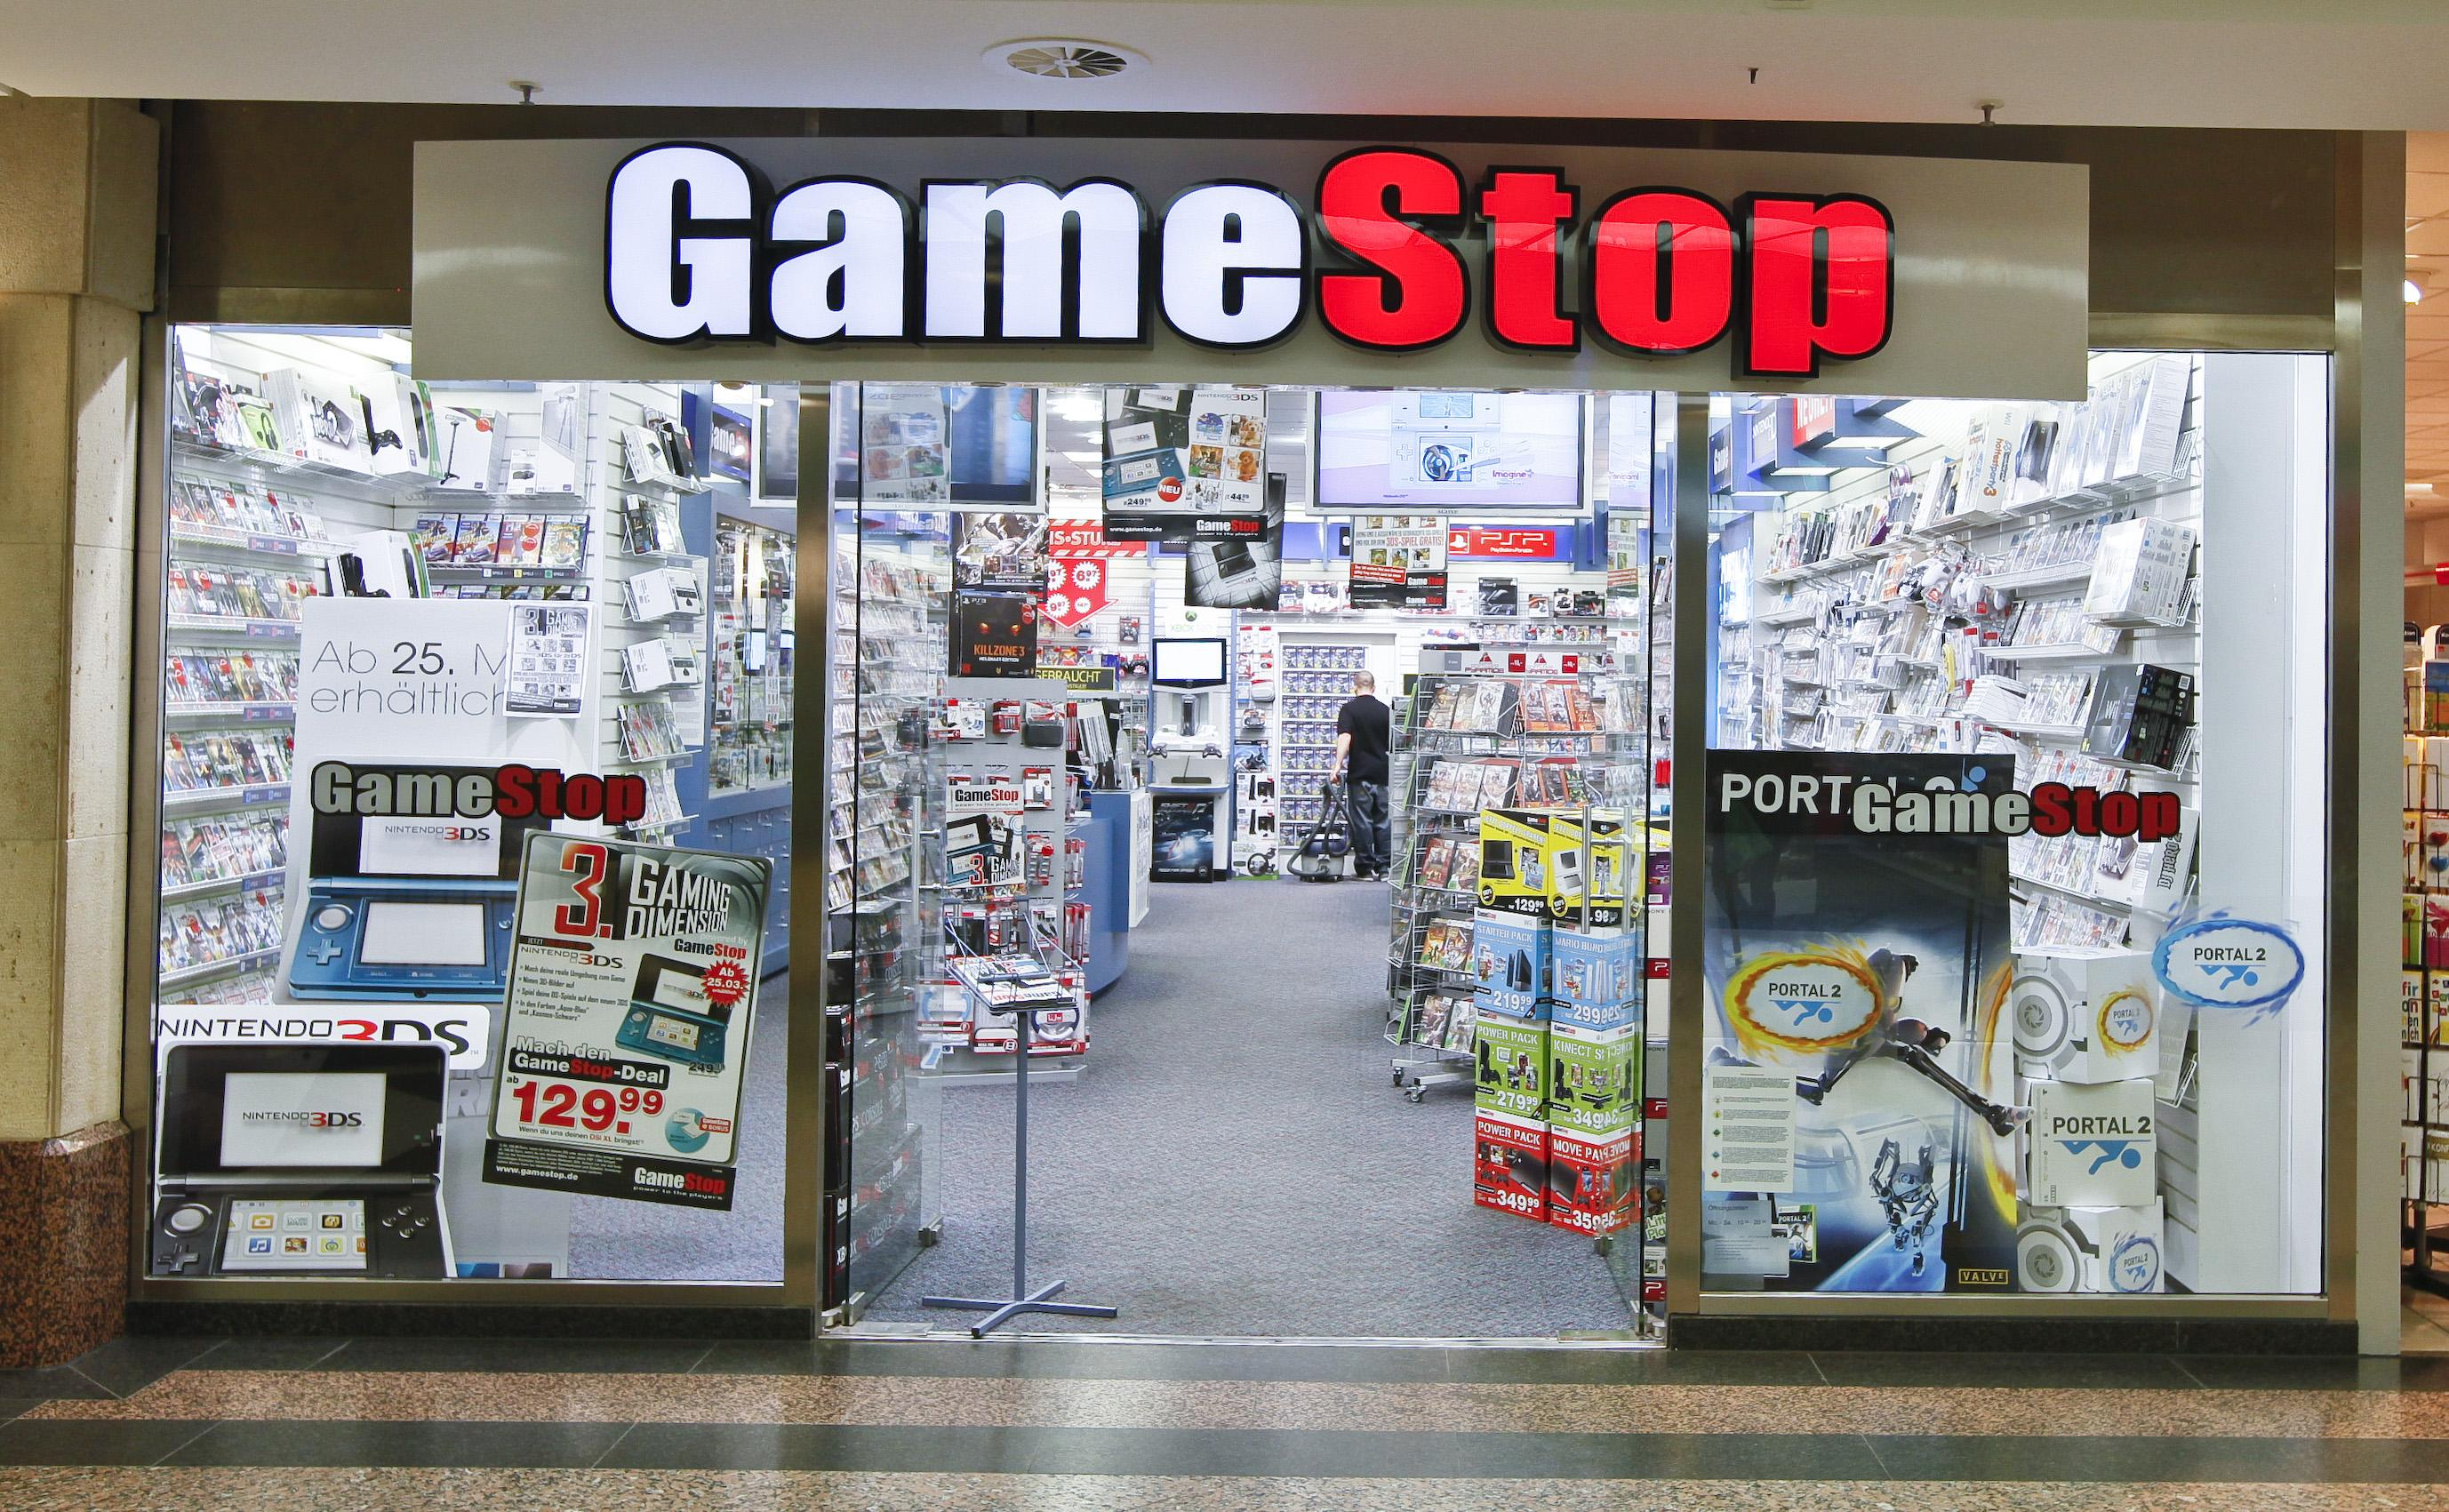 No matter what kind of games you like, there's something to get excited about at GameStop. Score a new Xbox , PlayStation 3, Kinect, or another system; snag the hottest games; and stock up on accessories like headsets, cooling systems, and more.